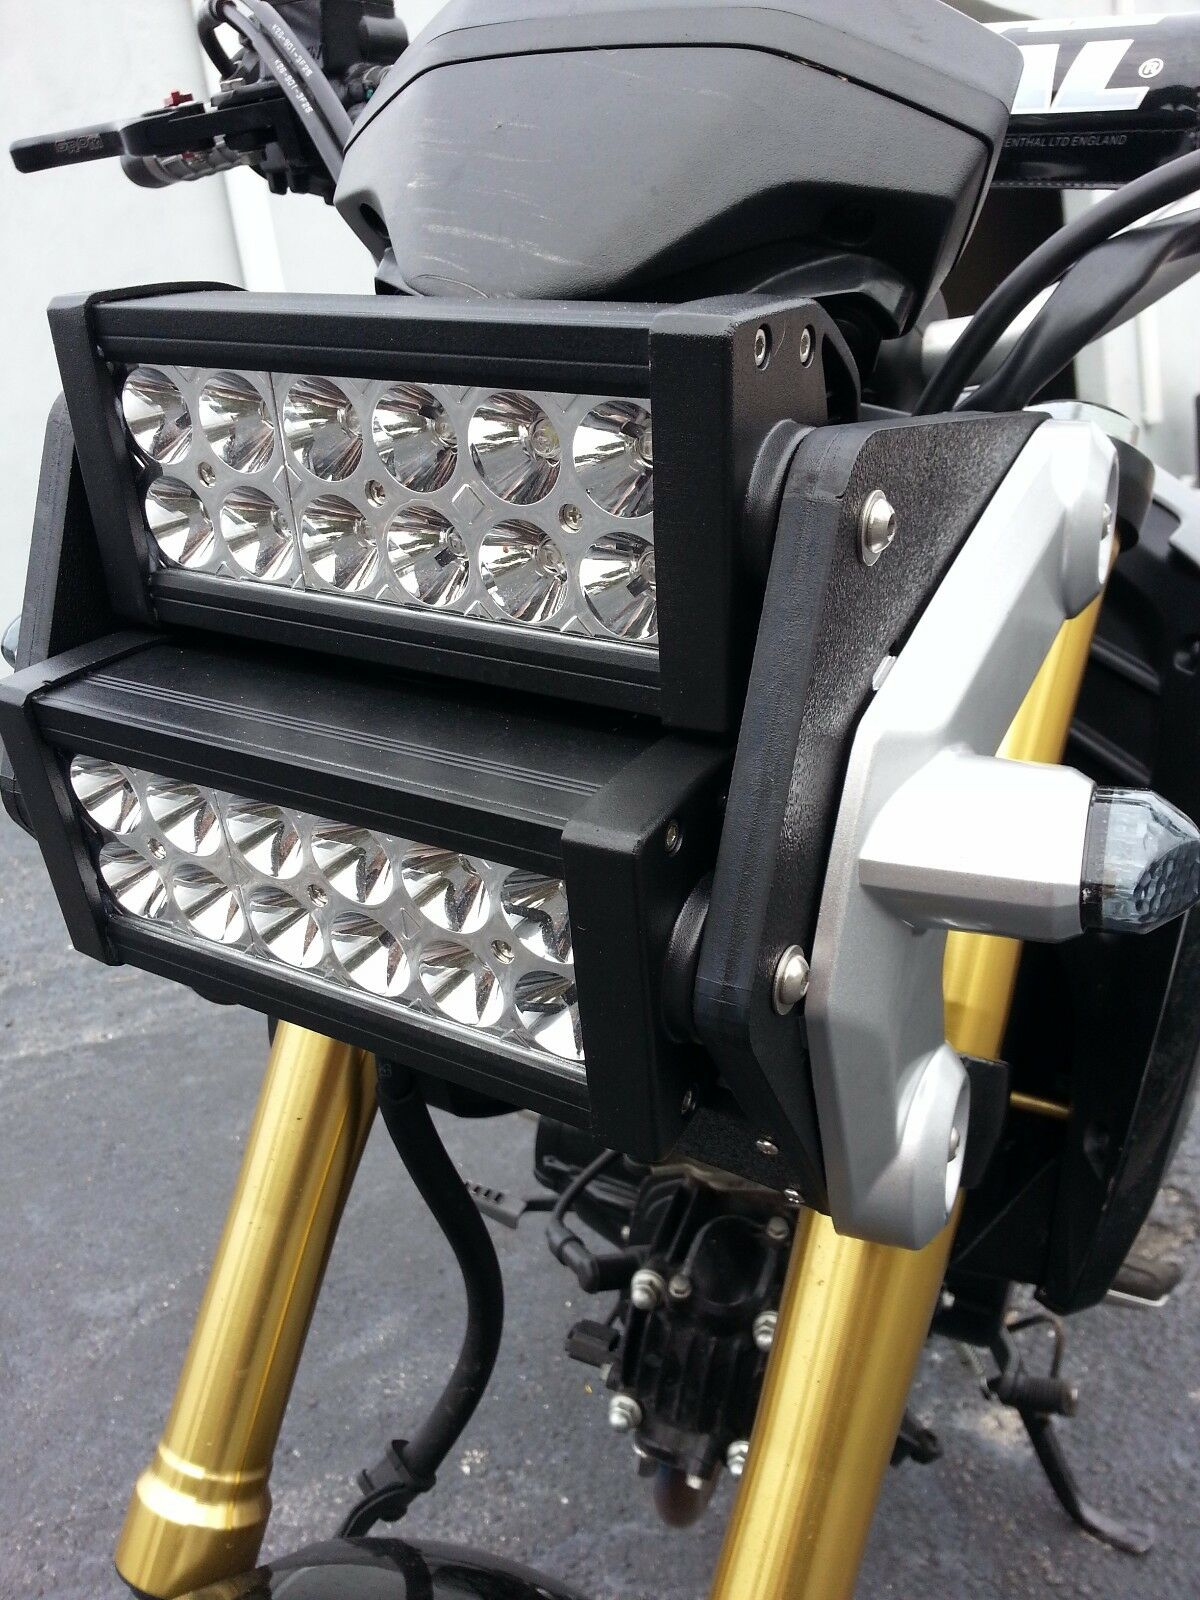 Honda grom msx125 double led light bar headlight conversion kit 2014 resntentobalflowflowcomponentncel aloadofball Gallery